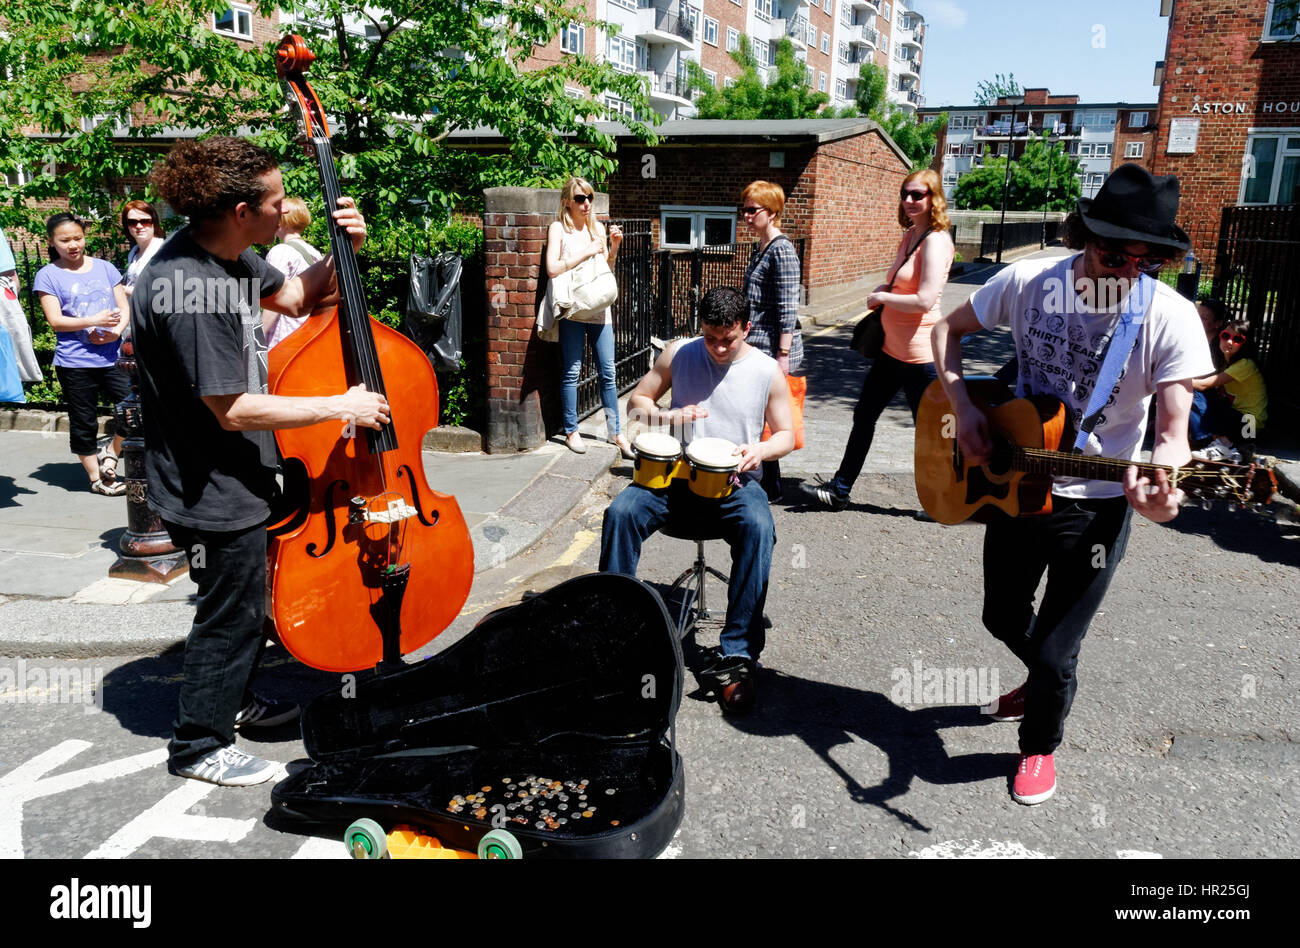 a-street-band-playing-music-in-the-stree